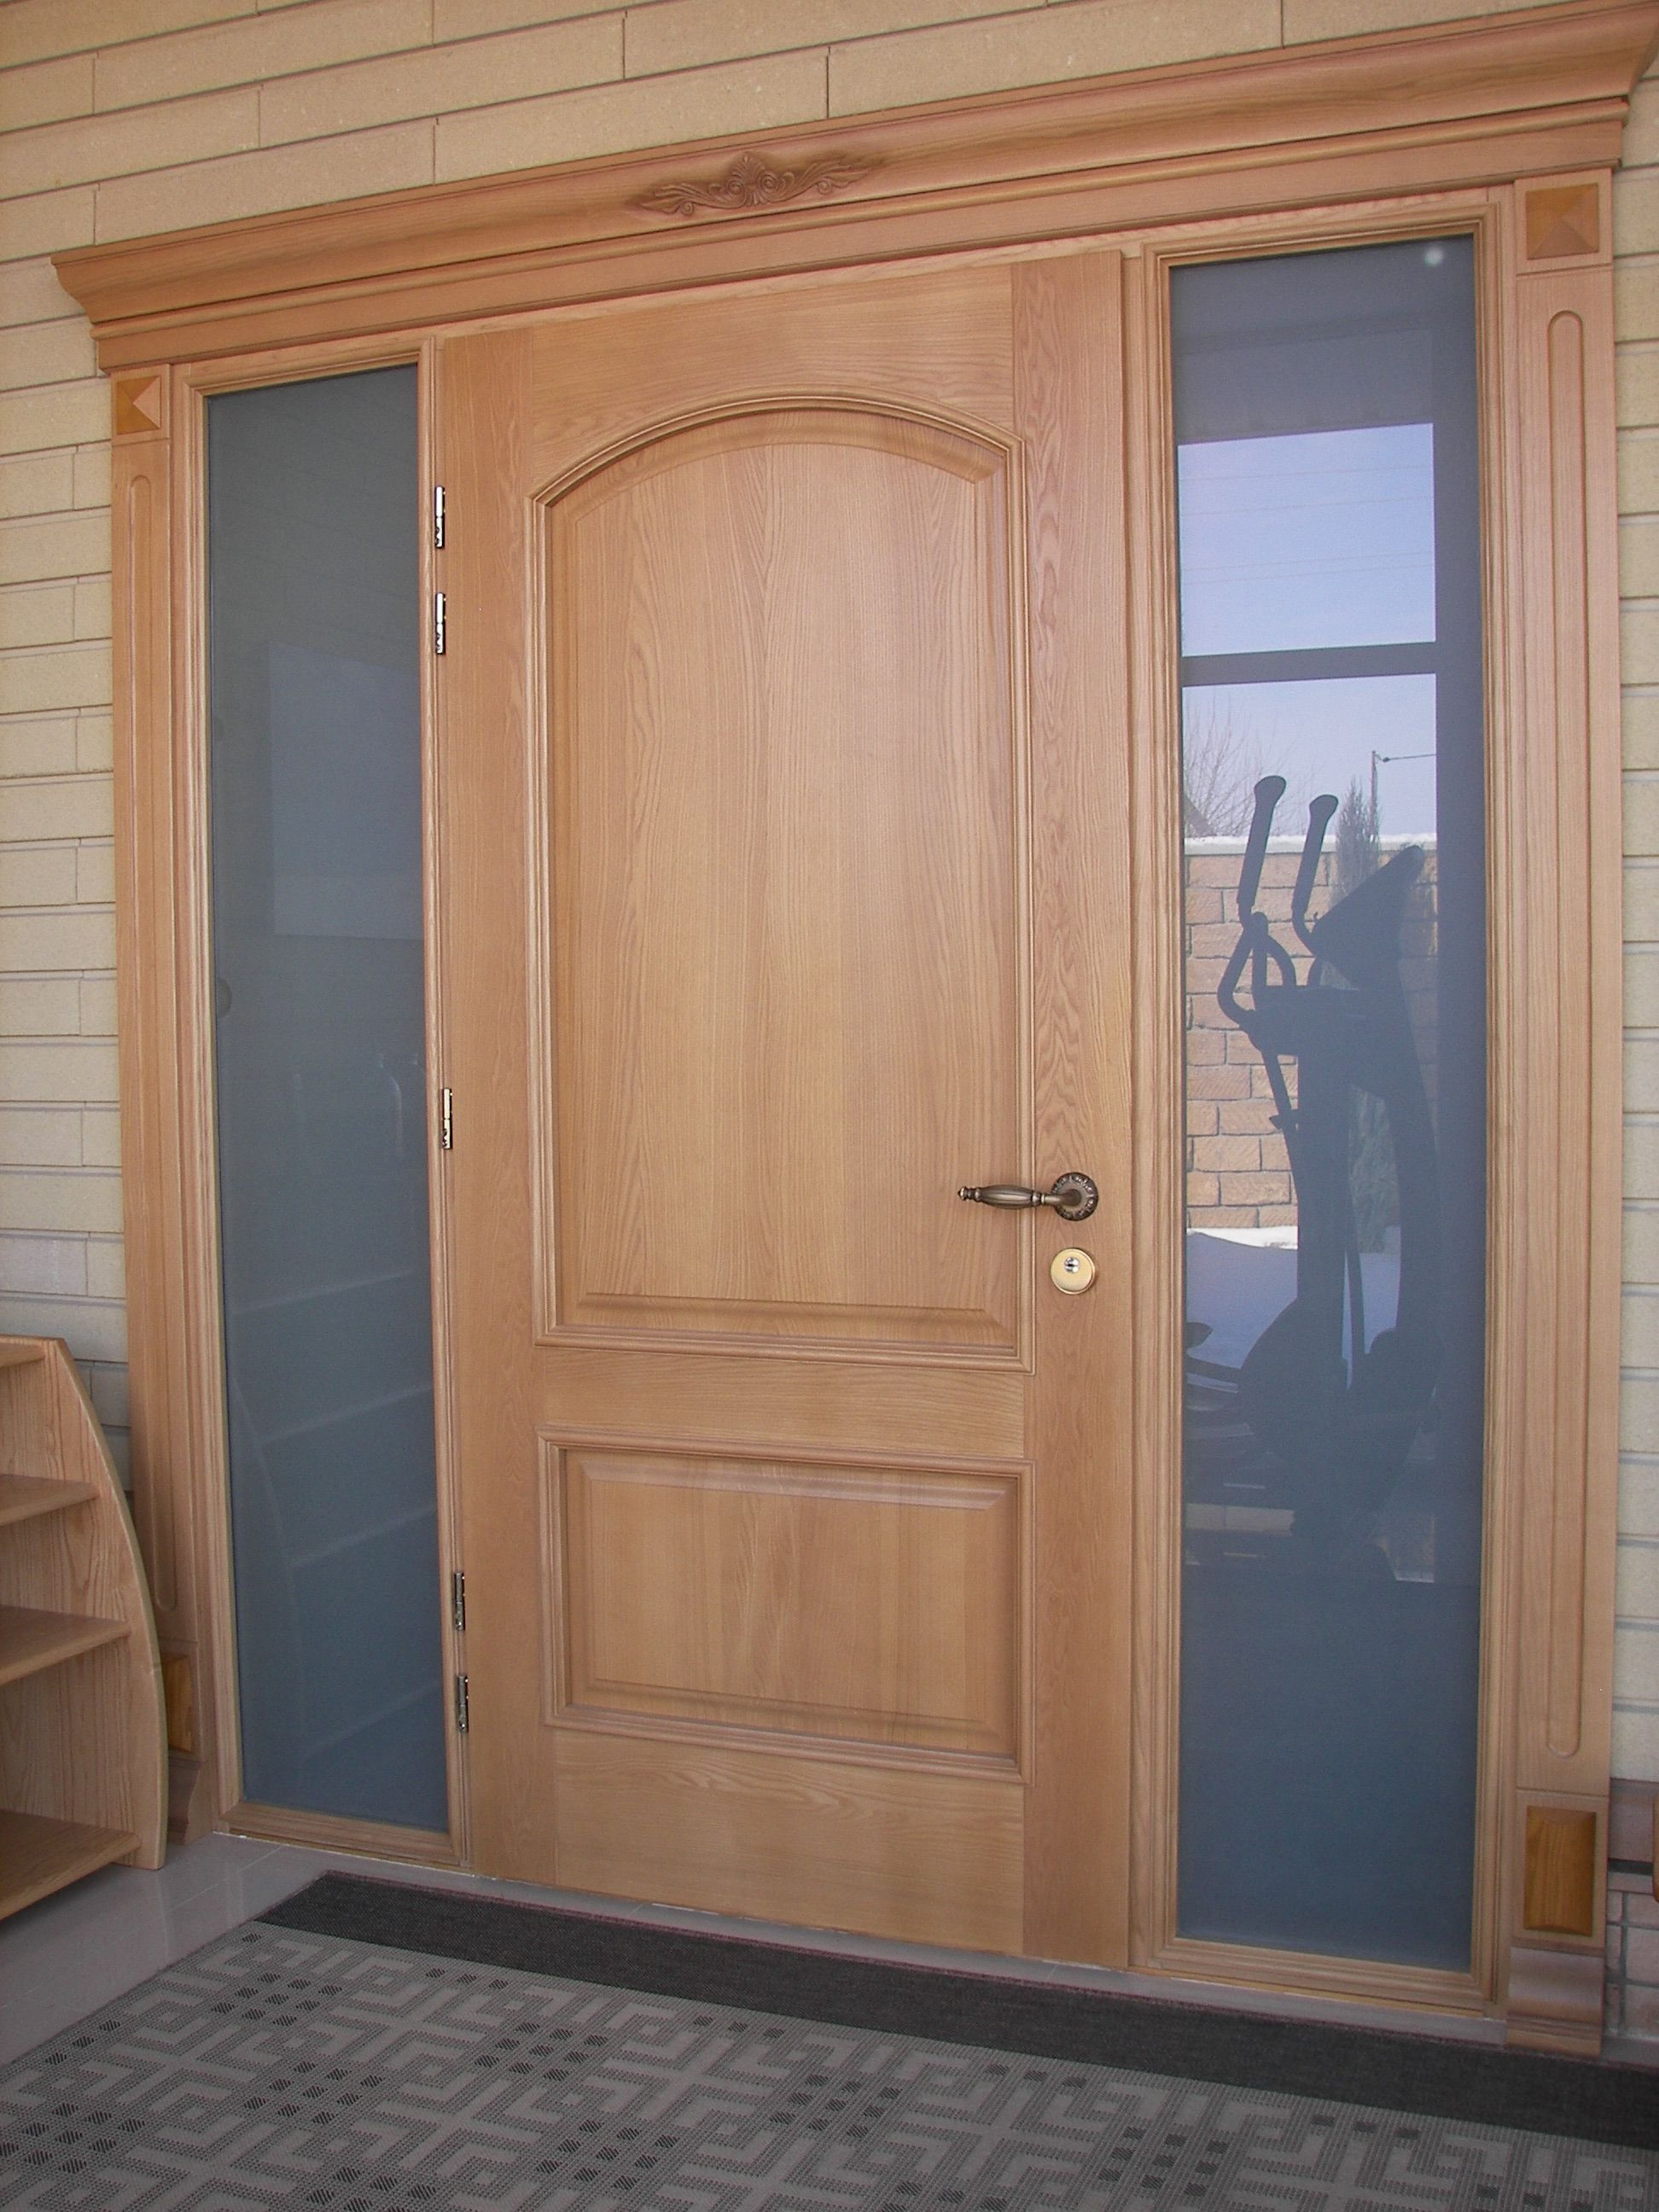 Entrance door made of wood